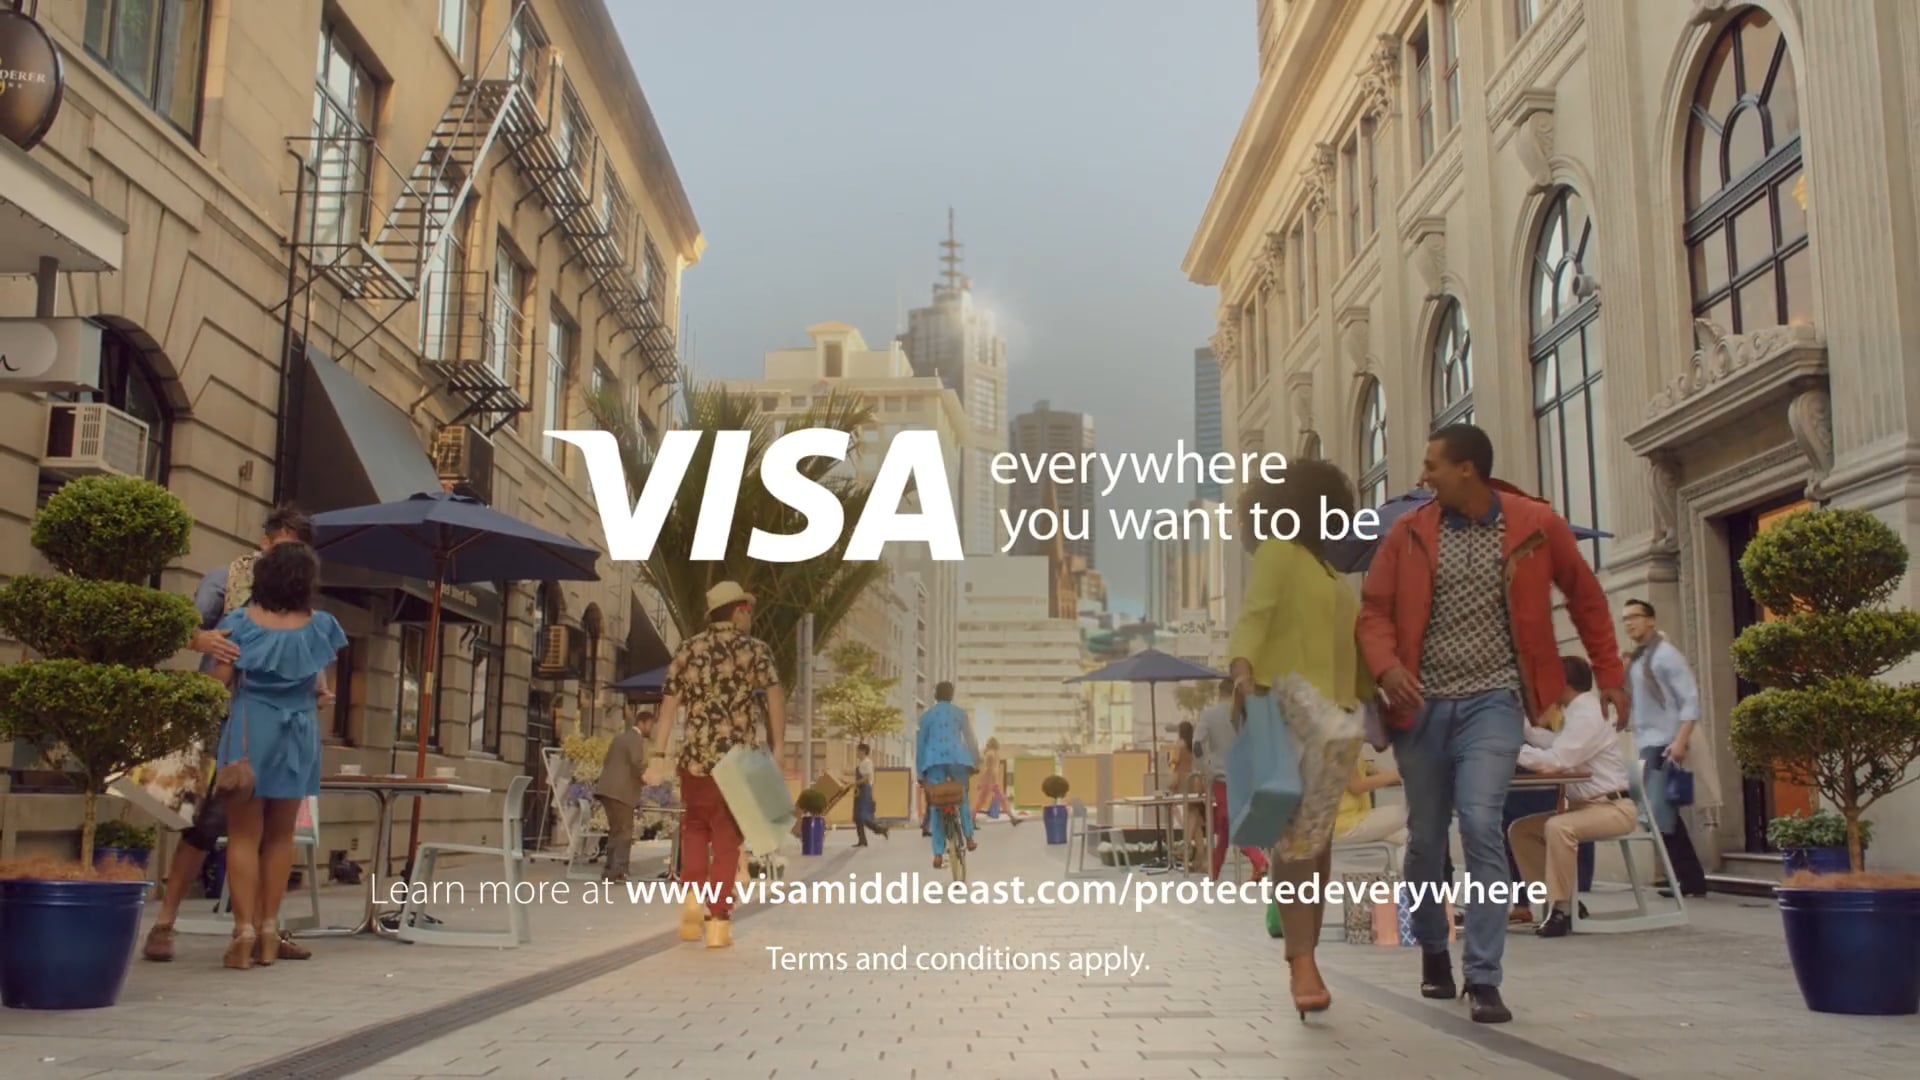 VISA - Pay with Confidence campaign